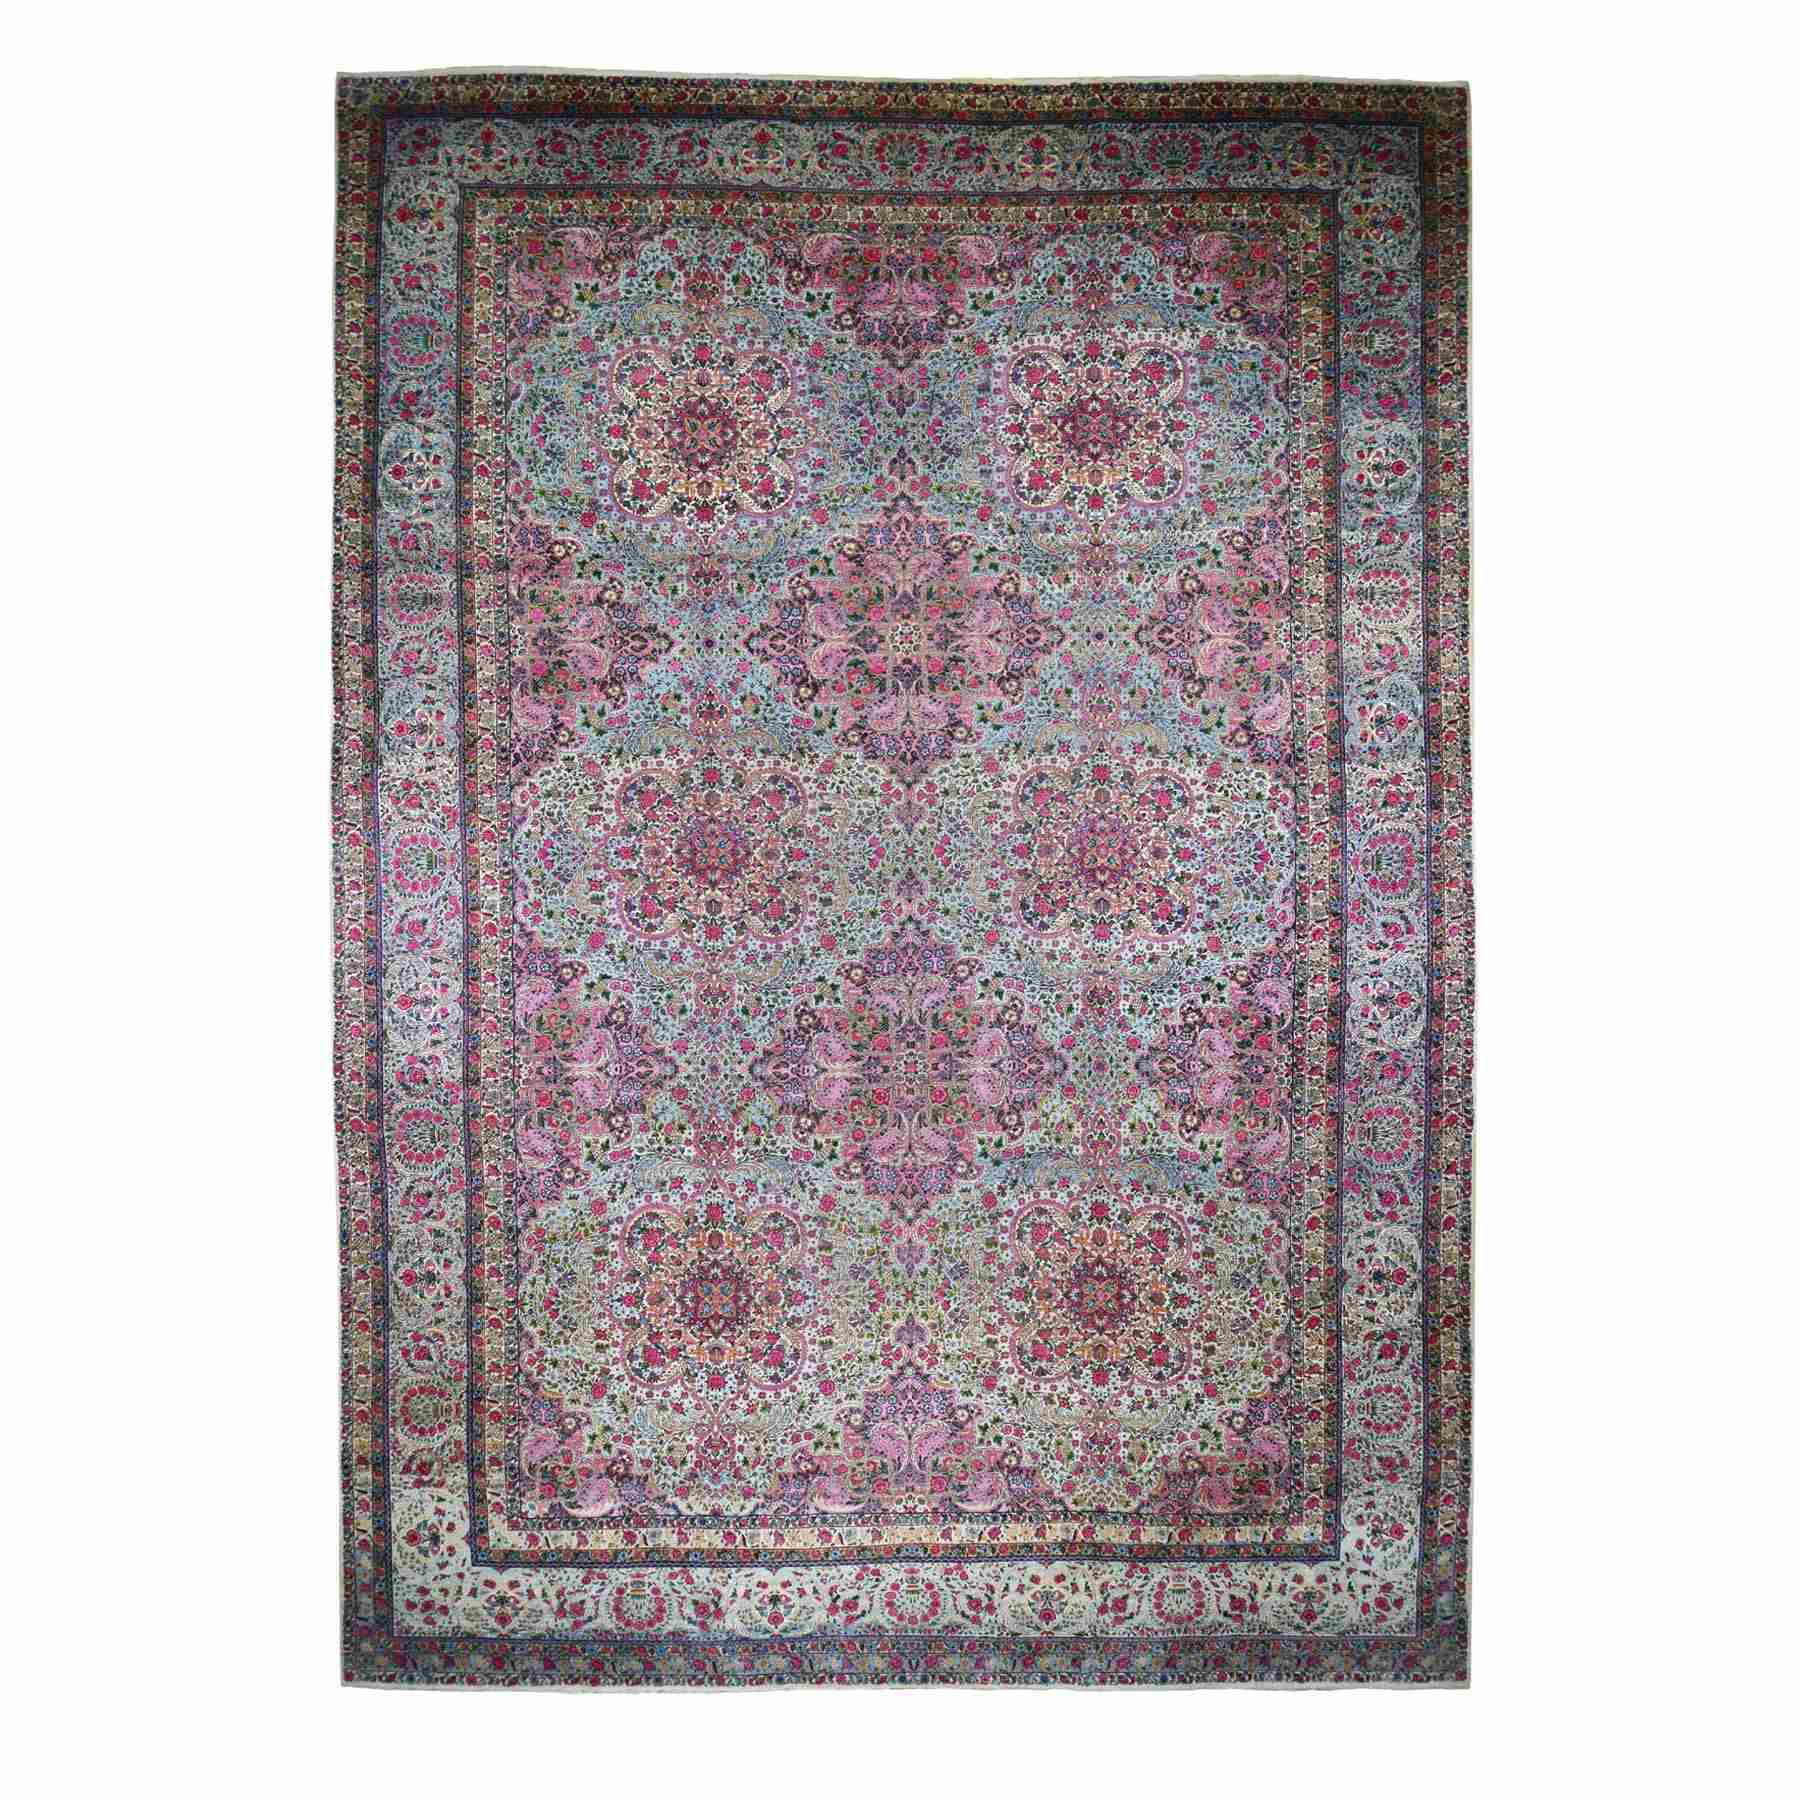 Antique-Hand-Knotted-Rug-235100